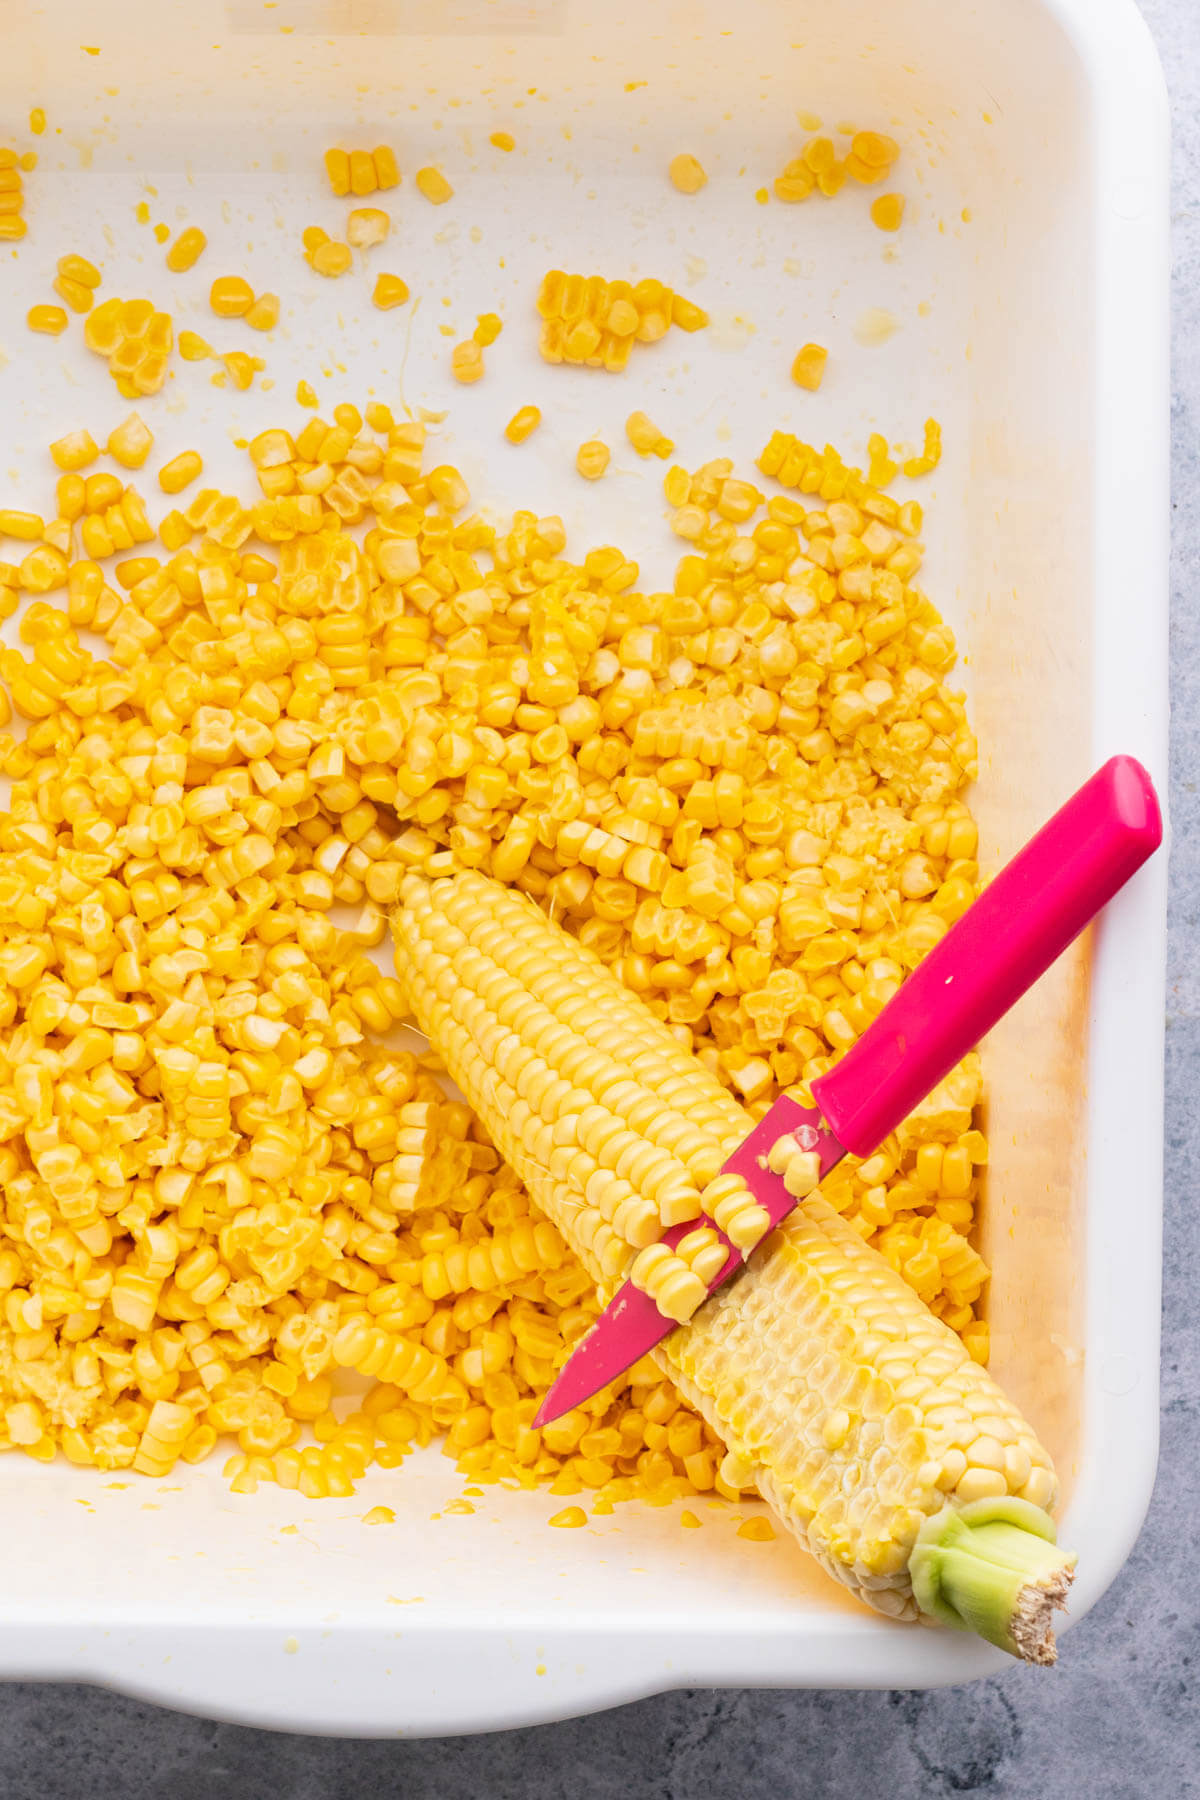 A demonstration of how to remove corn kernels from the corn cob.